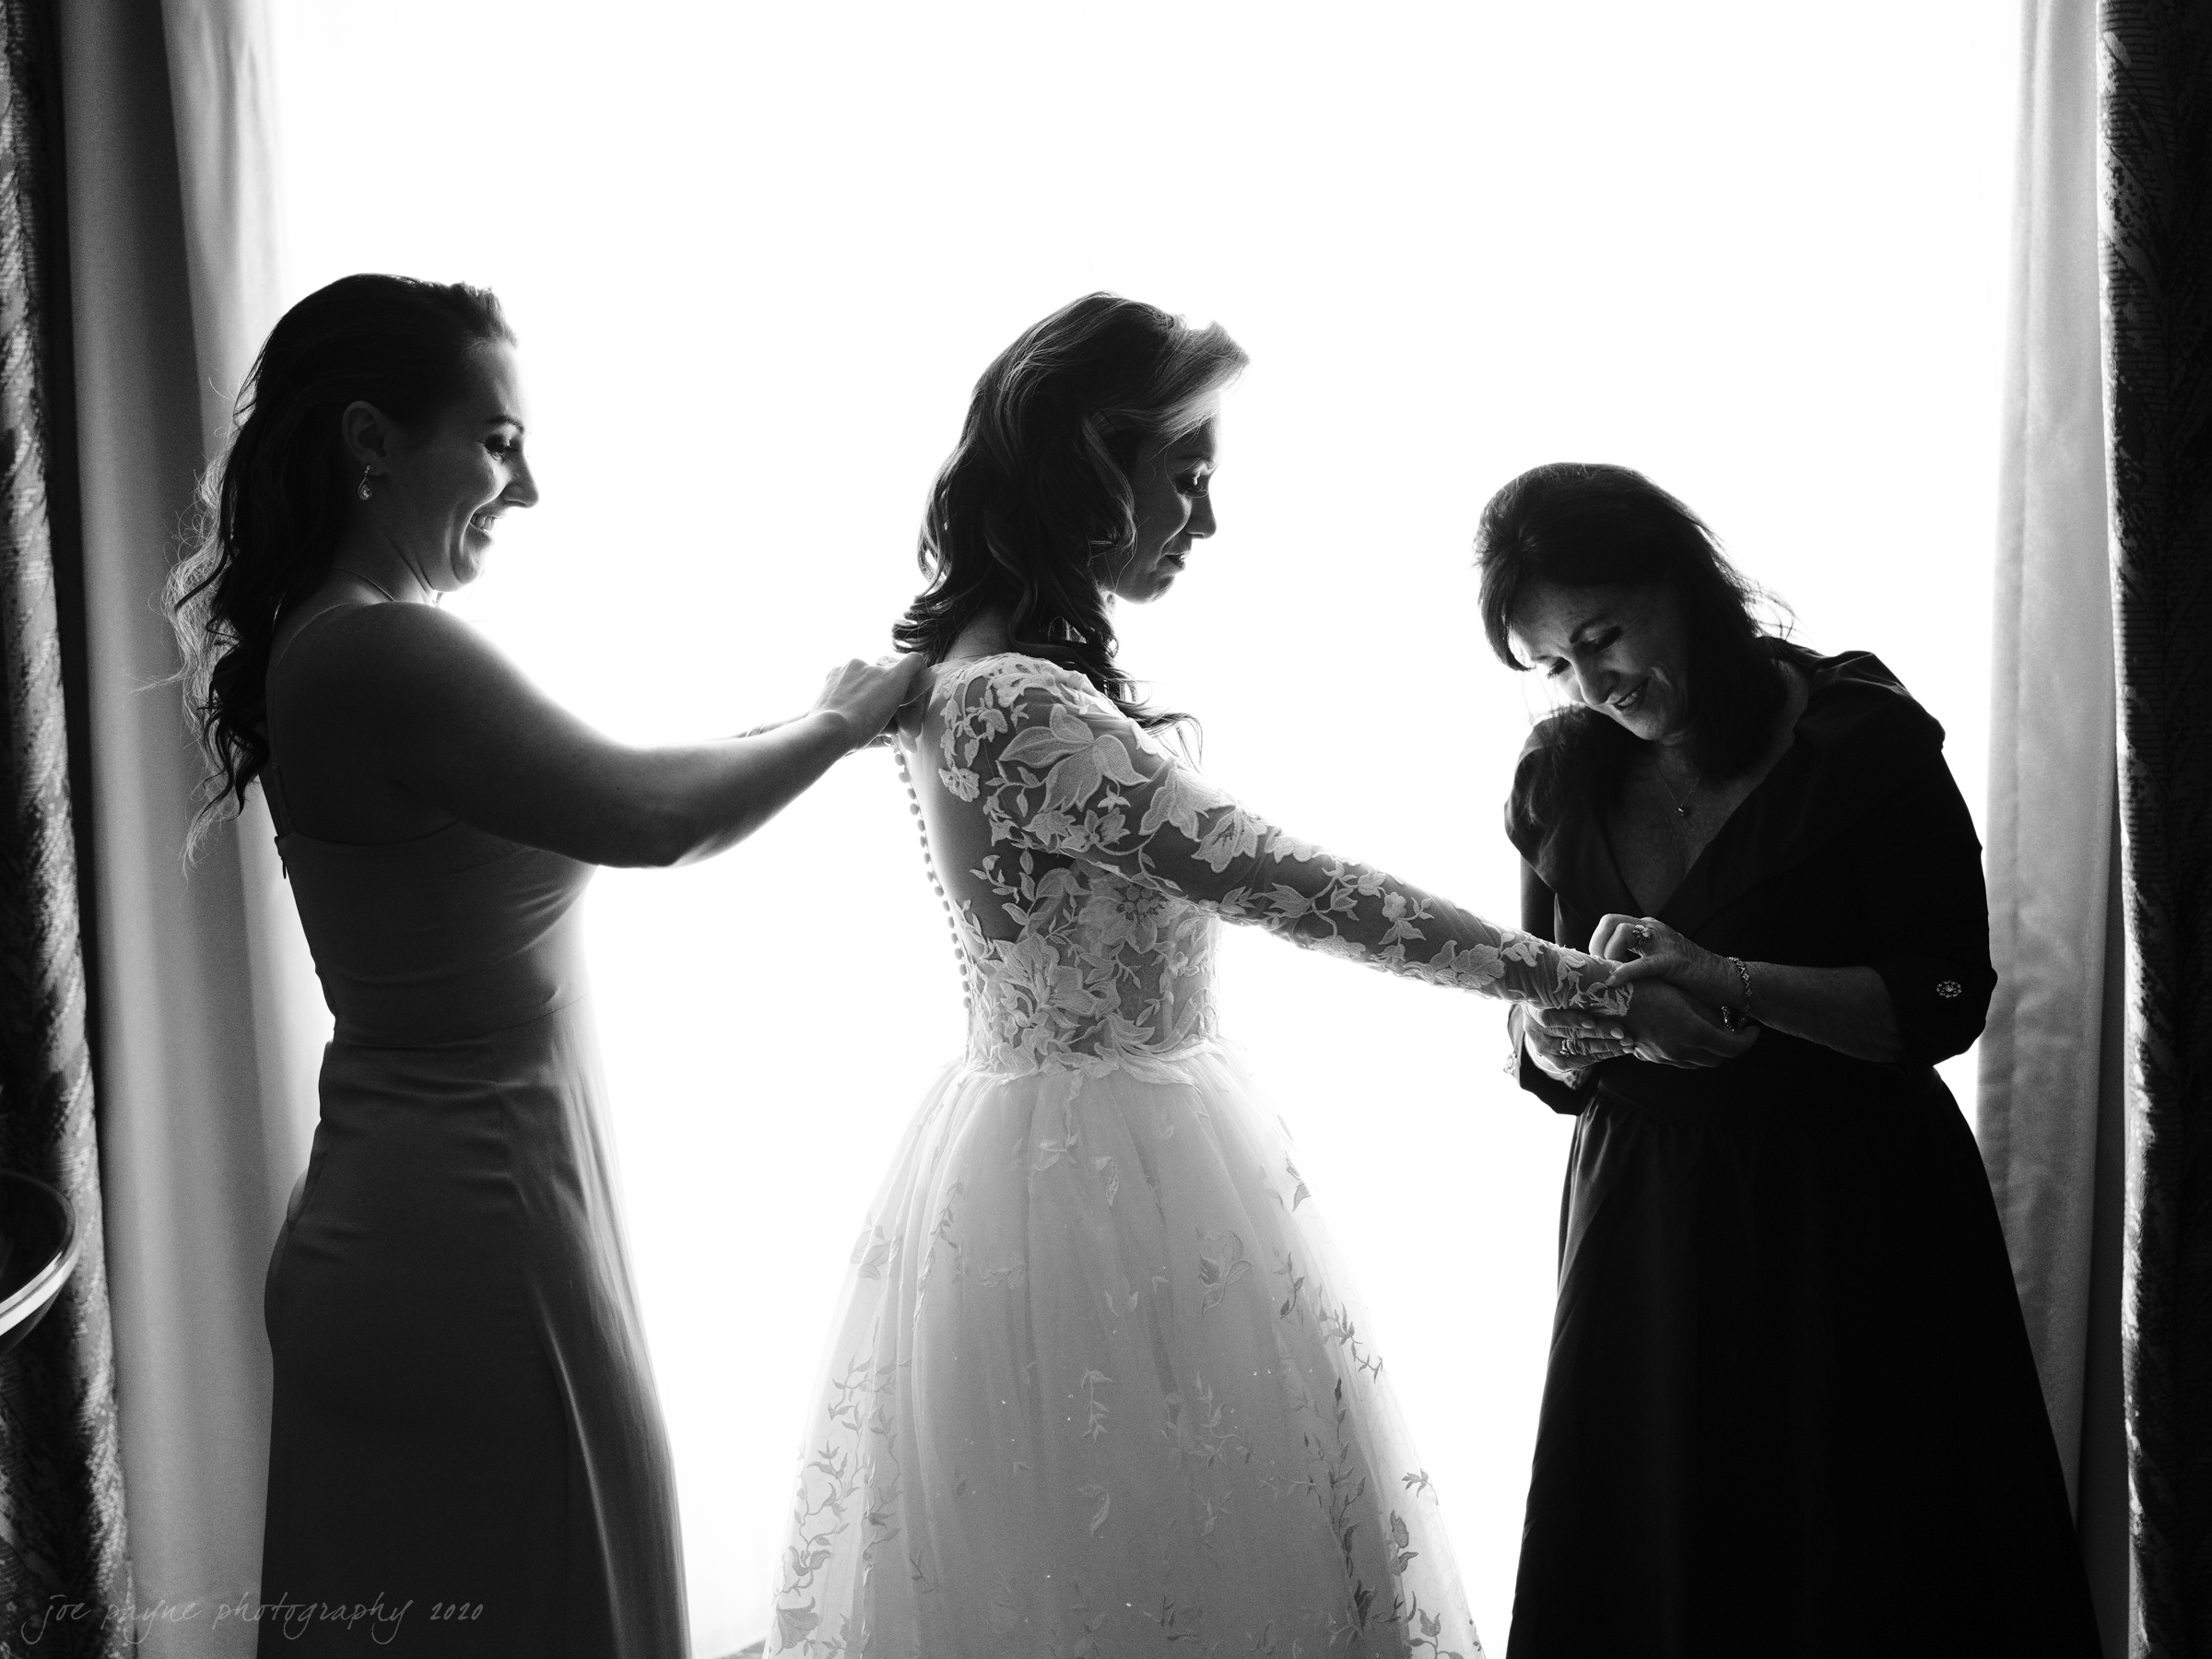 umstead hotel park wedding photography brittany harrison 1 4